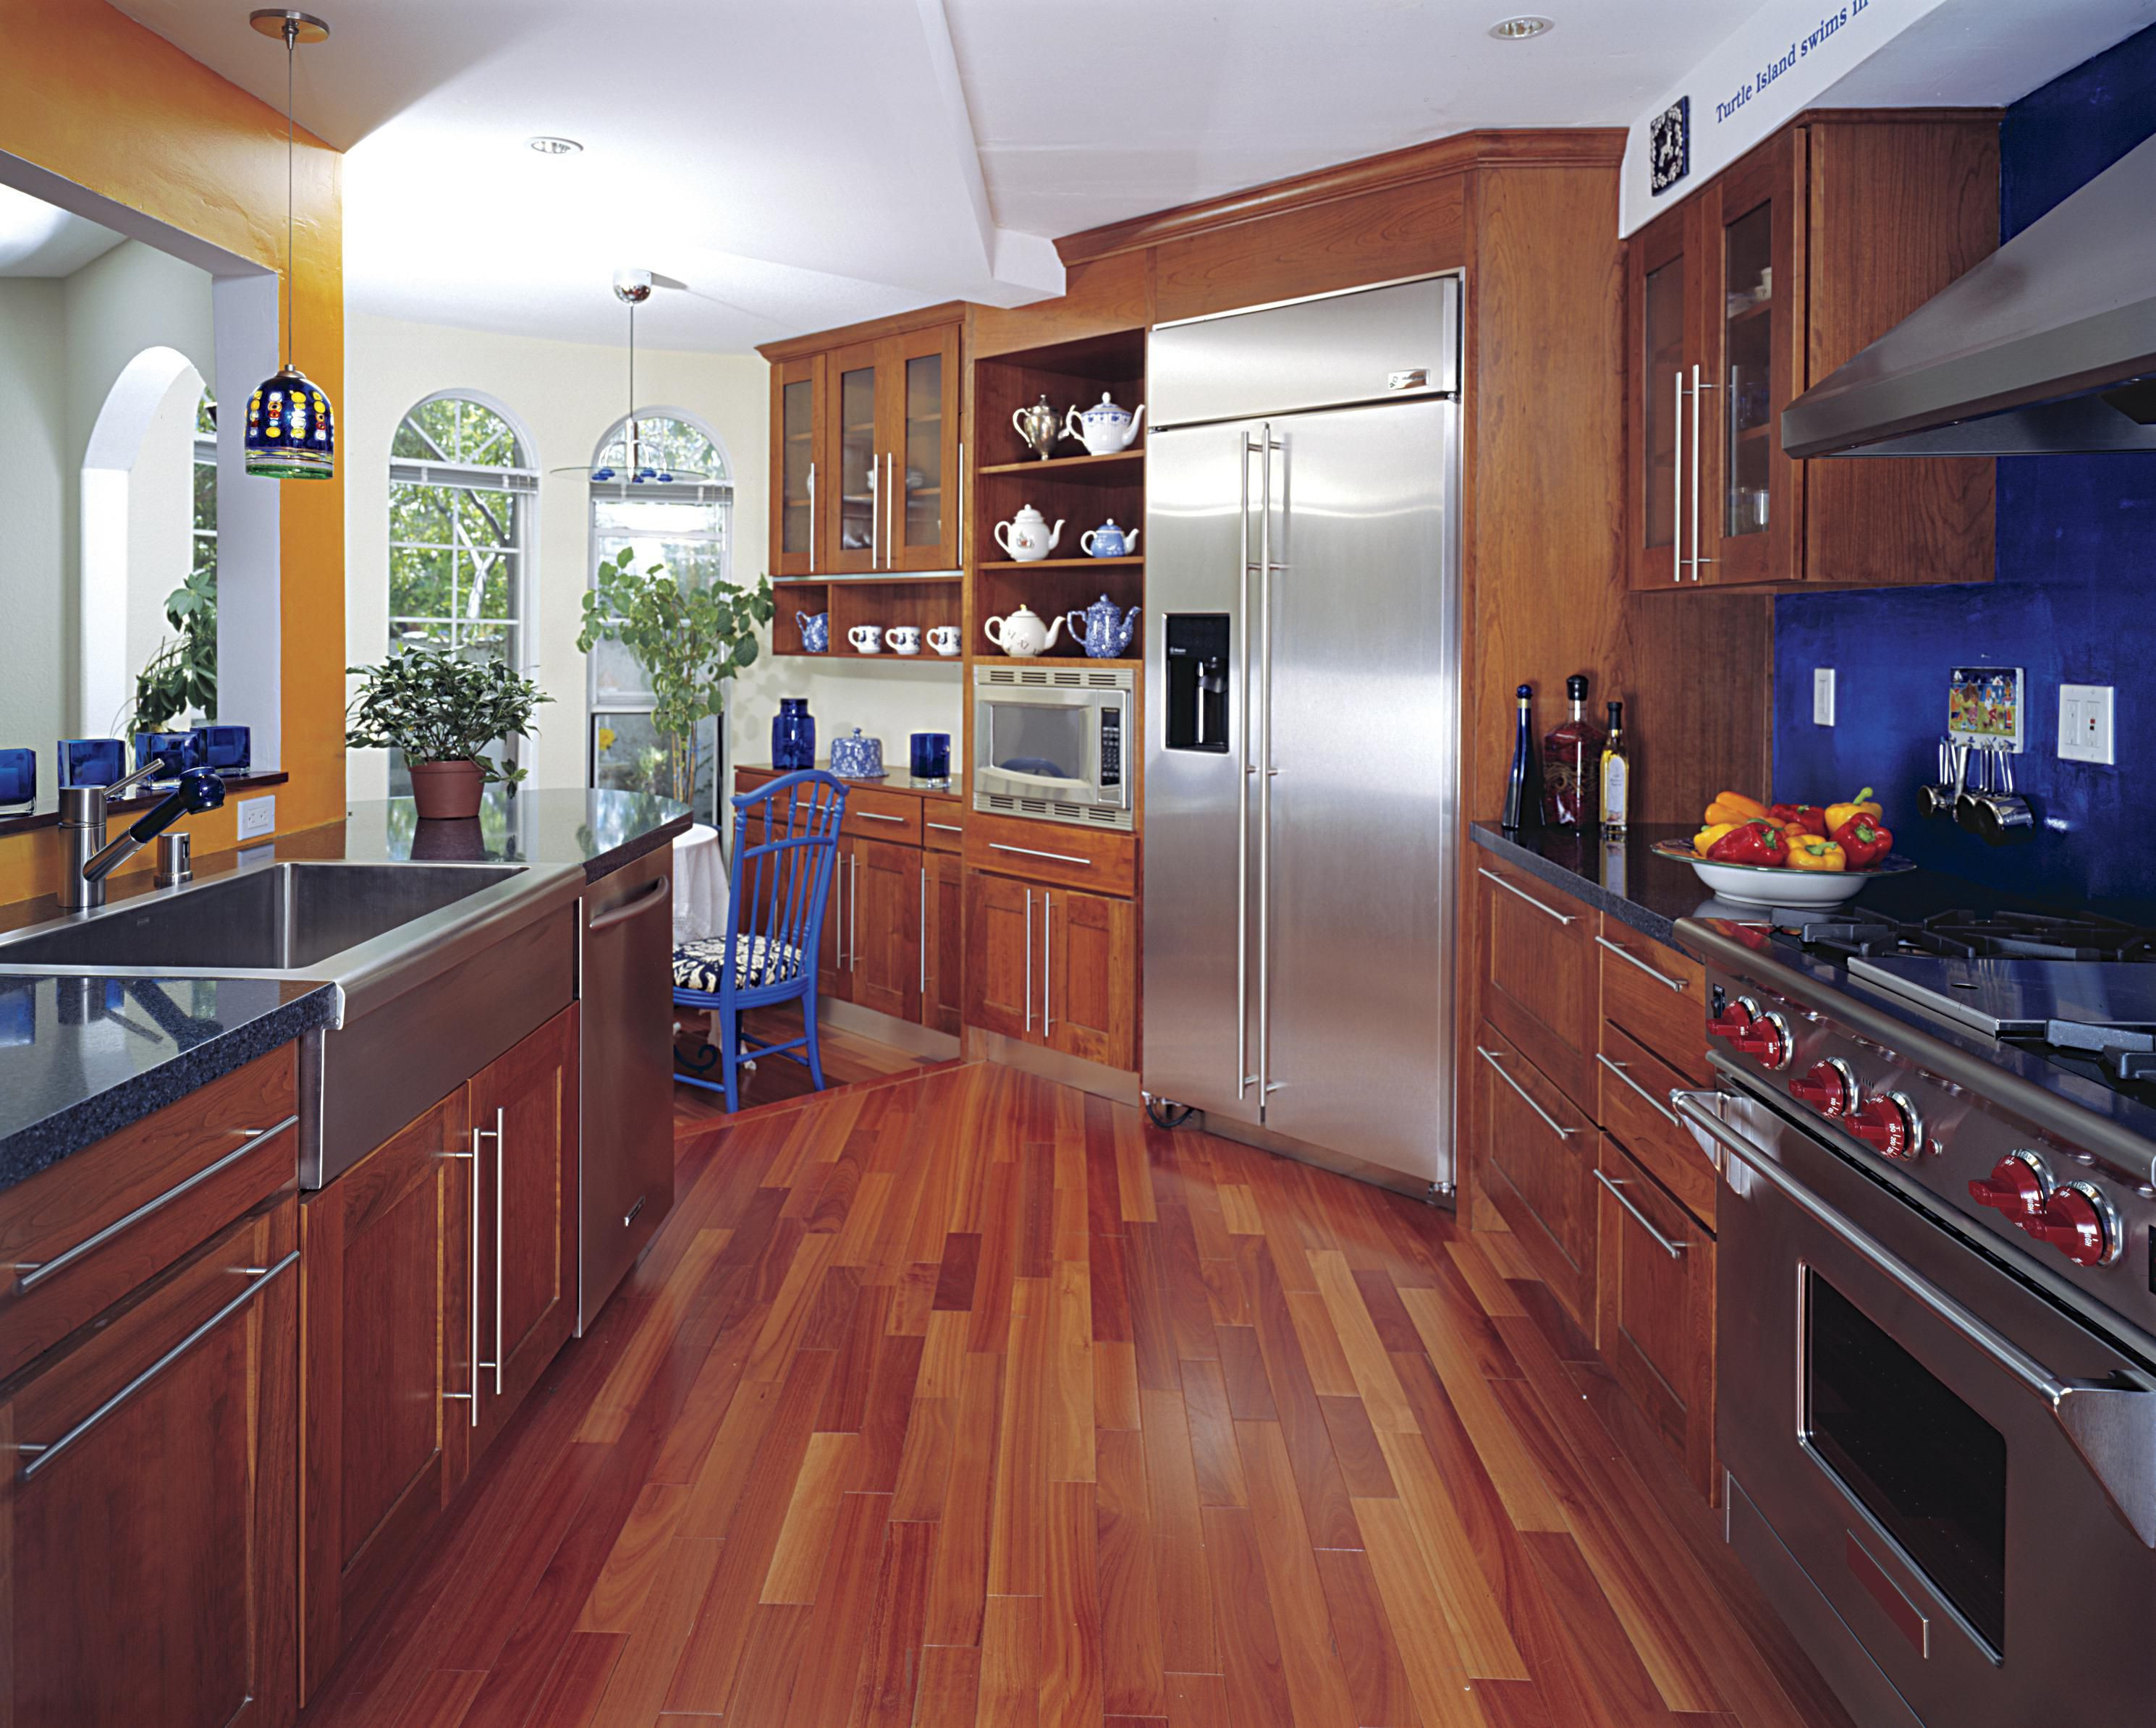 3 4 oak hardwood flooring of hardwood floor in a kitchen is this allowed pertaining to 186828472 56a49f3a5f9b58b7d0d7e142